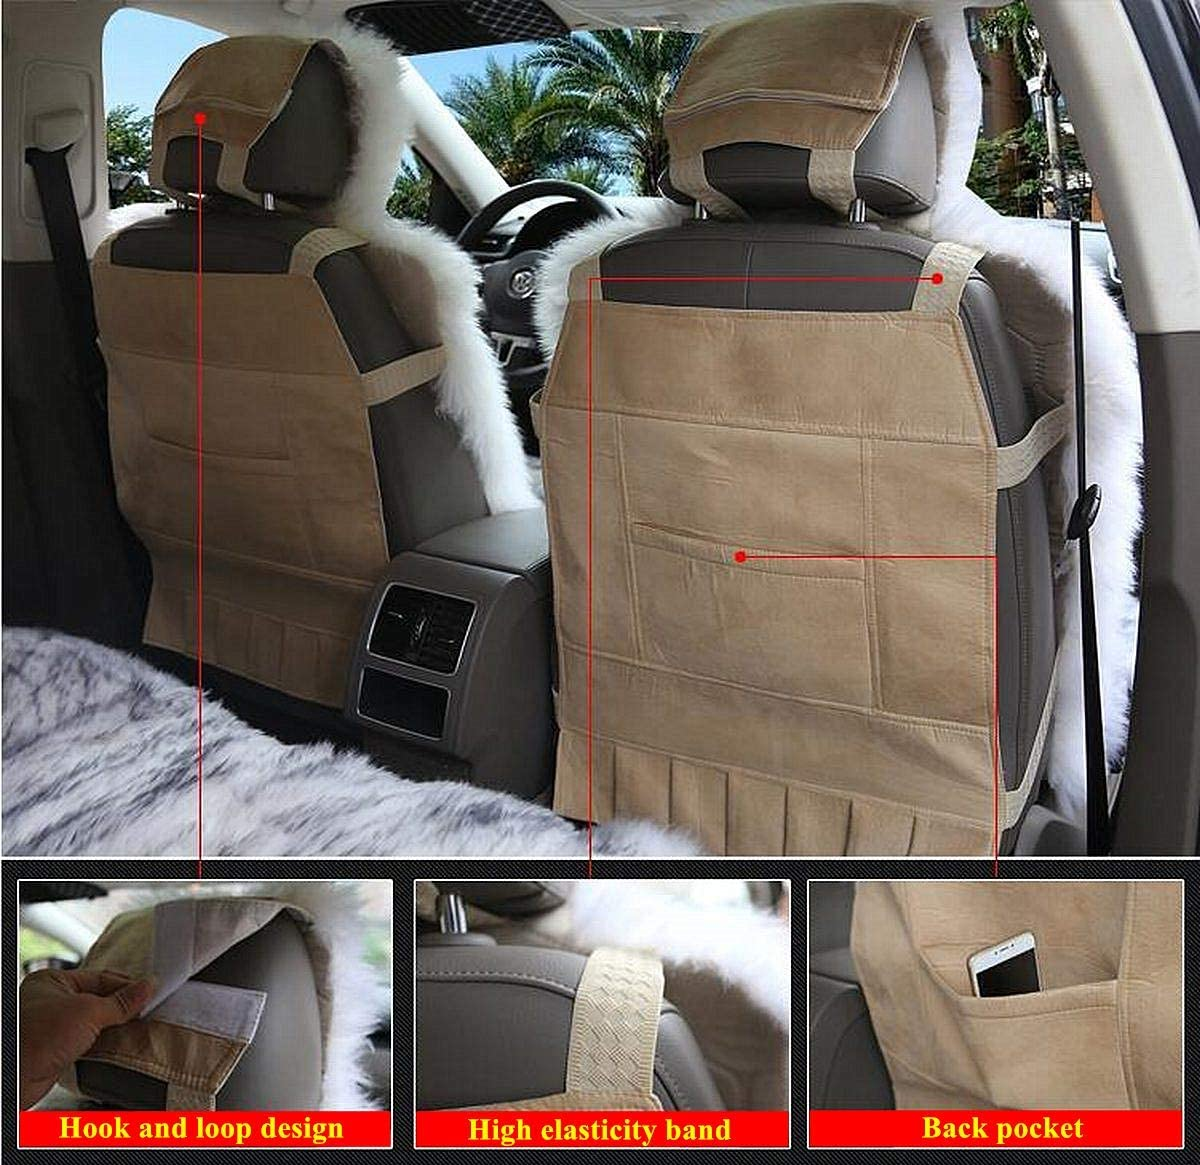 Chemu Car Seat Covers Car Interior Accessories Winter Warm Seat Protector Black for 2018 Chevy Equinox Cruze 2019 Toyota Tacoma TRD PRO Double Cab RAV4 Corolla Camry